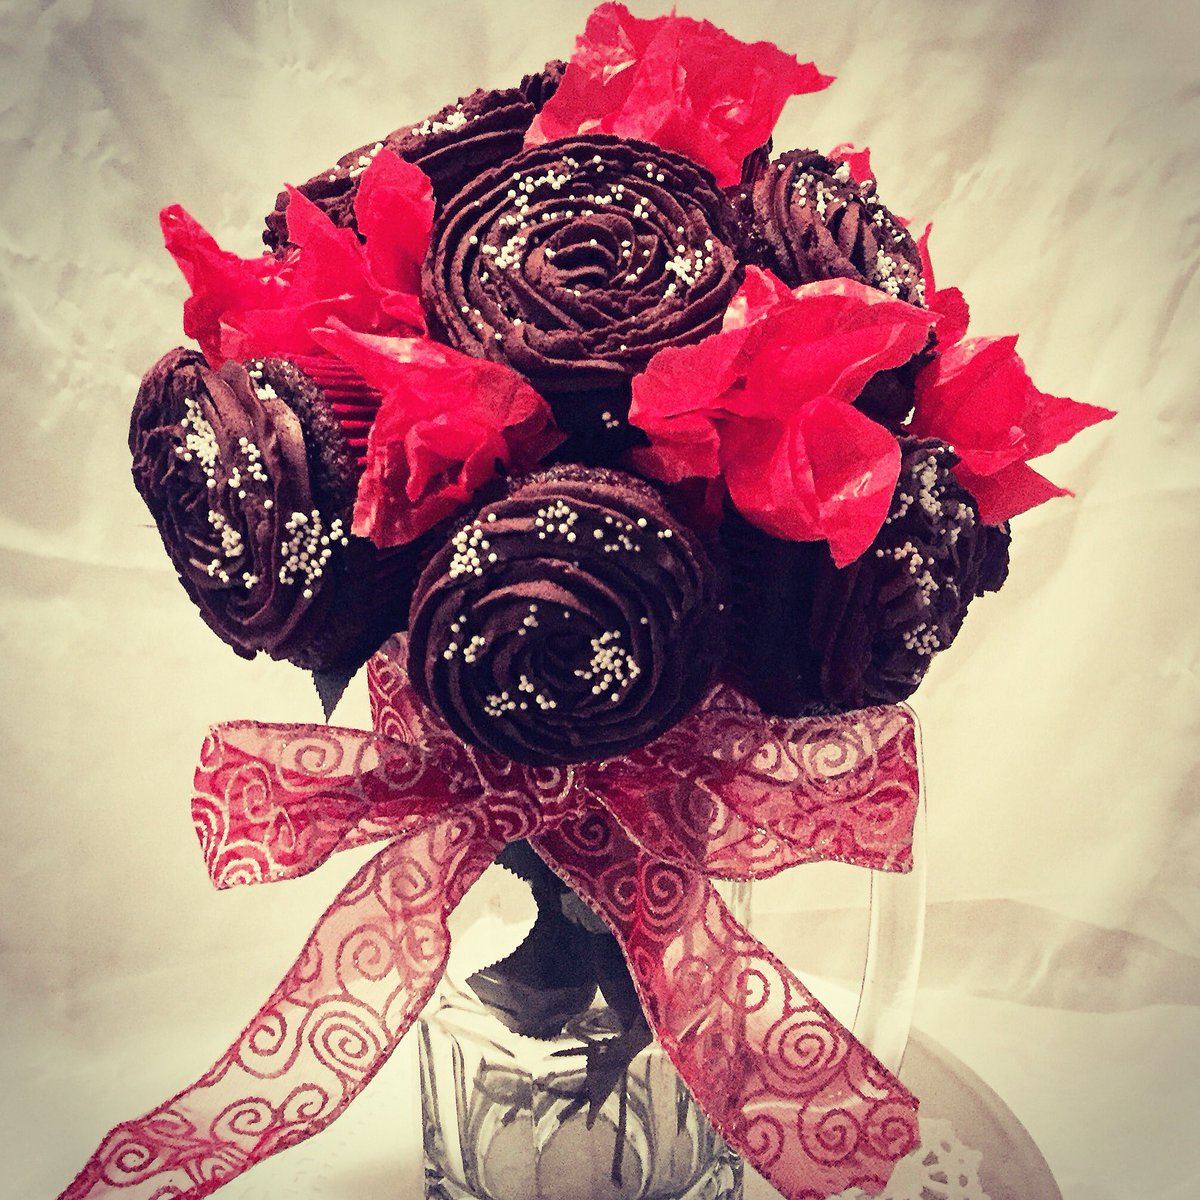 vdaybouquet - Twitter Search